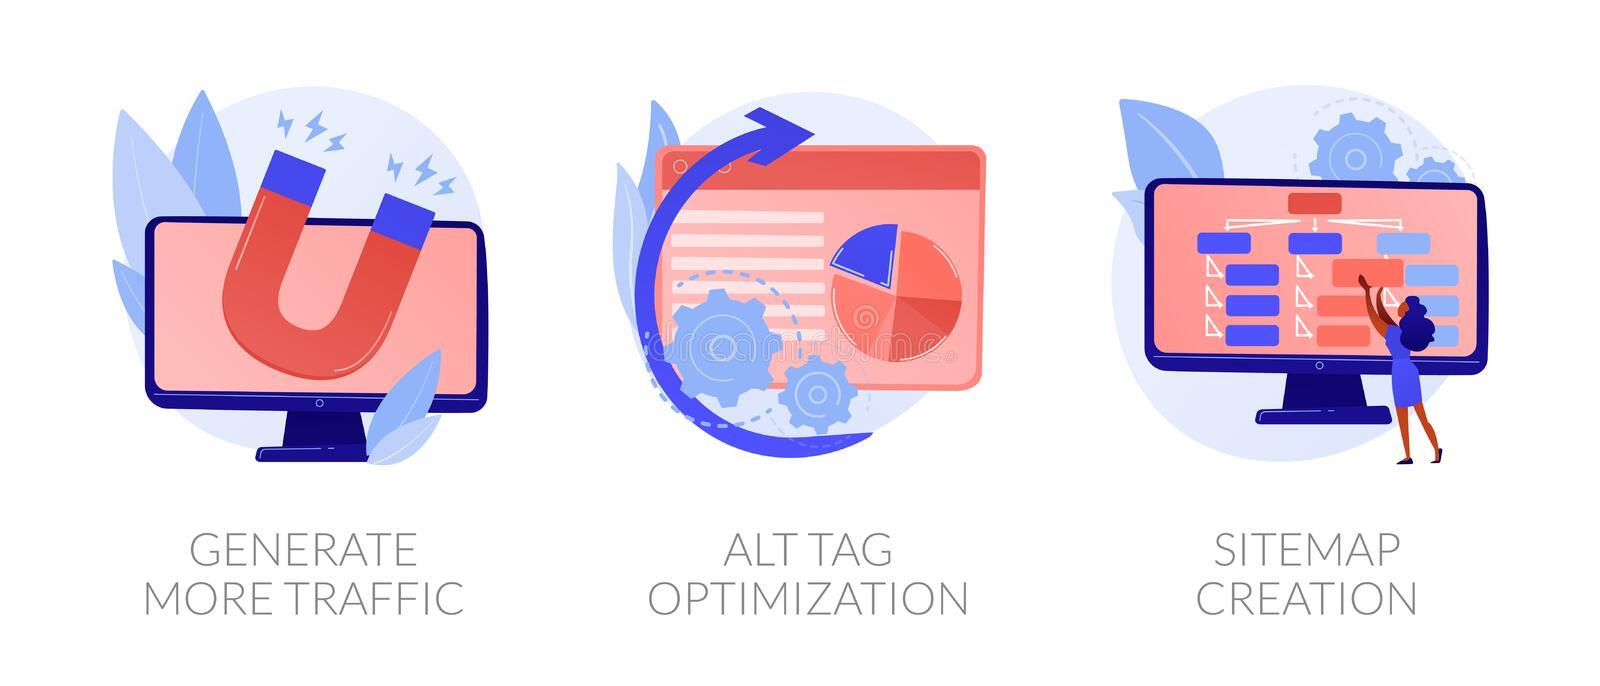 SEO results vector concept metaphors. Website promotion services icons set. Search engine optimization business. Generate more traffic, alt tag optimization vector illustration